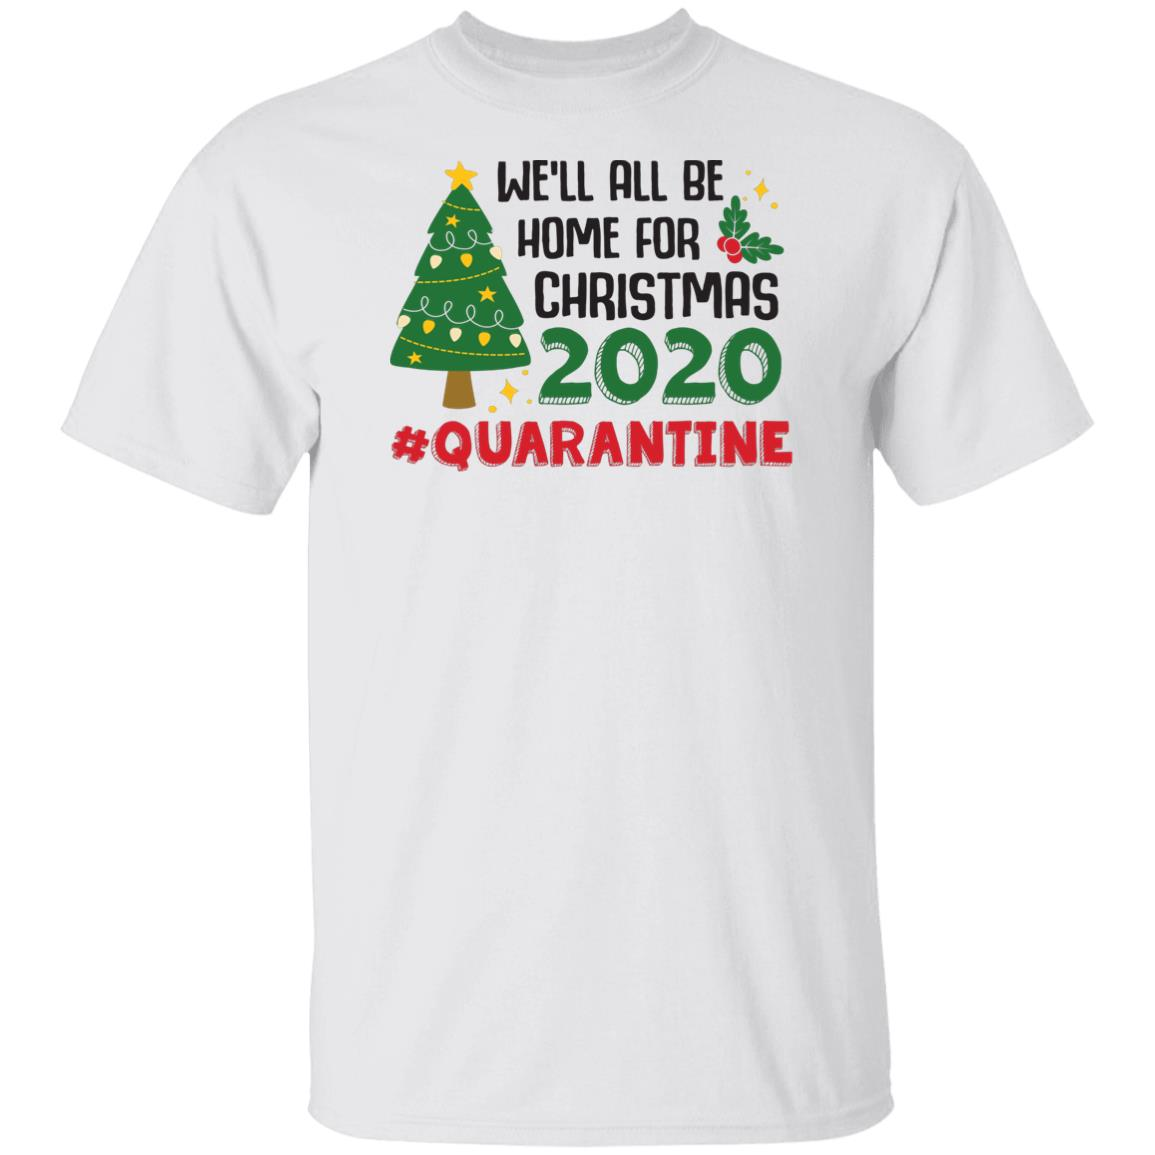 Christmas 2020 Family Shirts - CSCC105